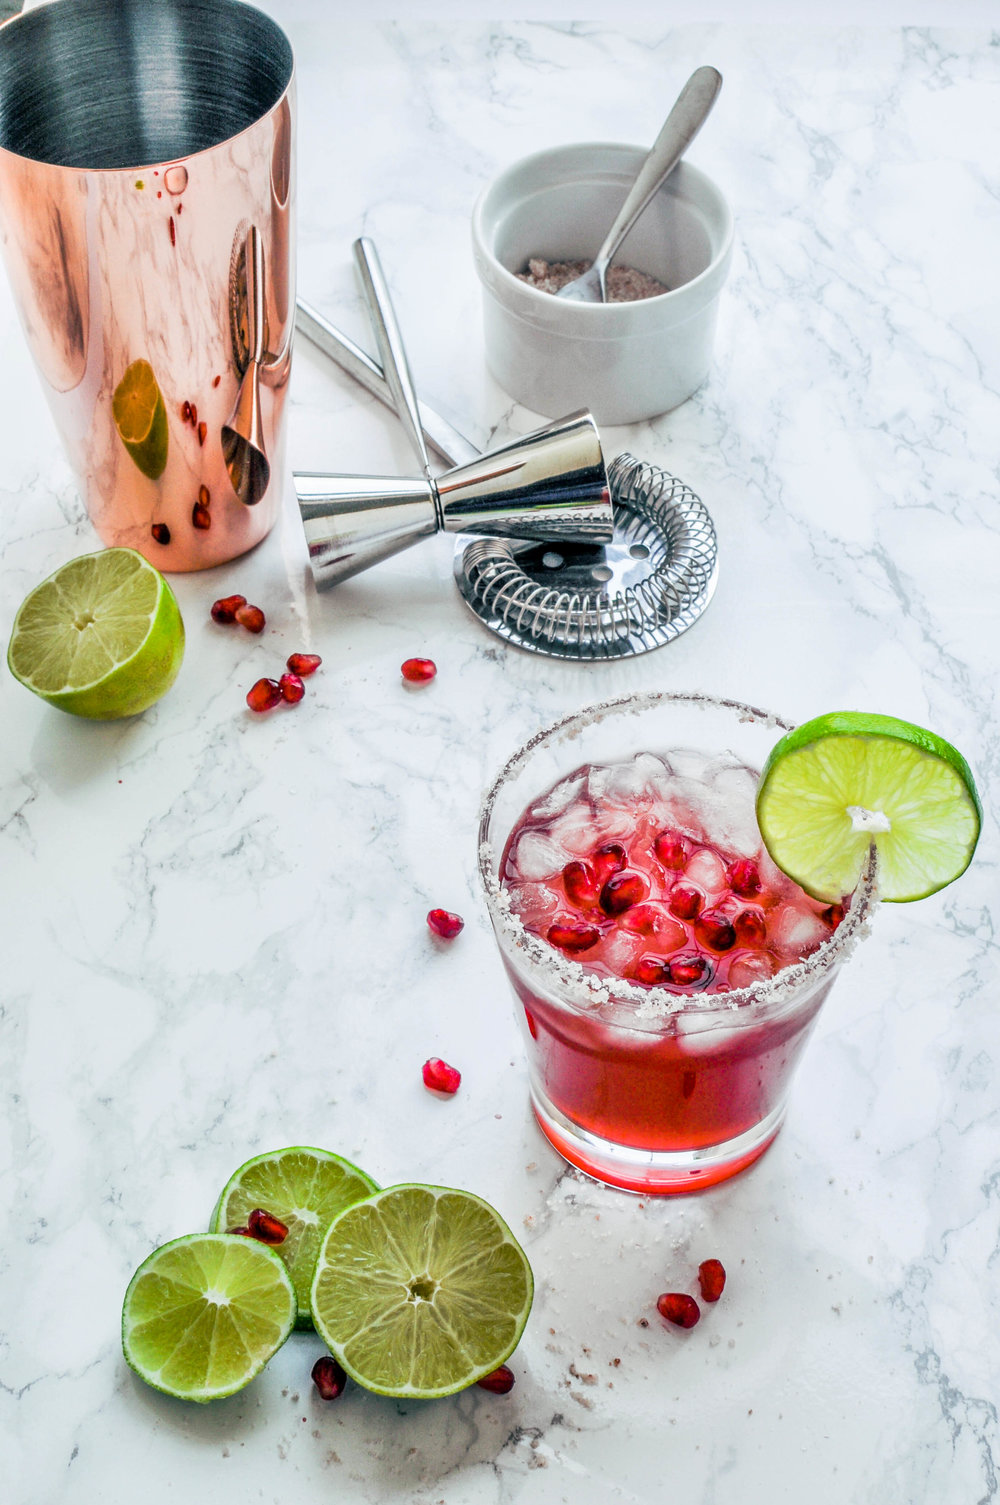 Pomegranate Margarita Recipe | This Healthy Table